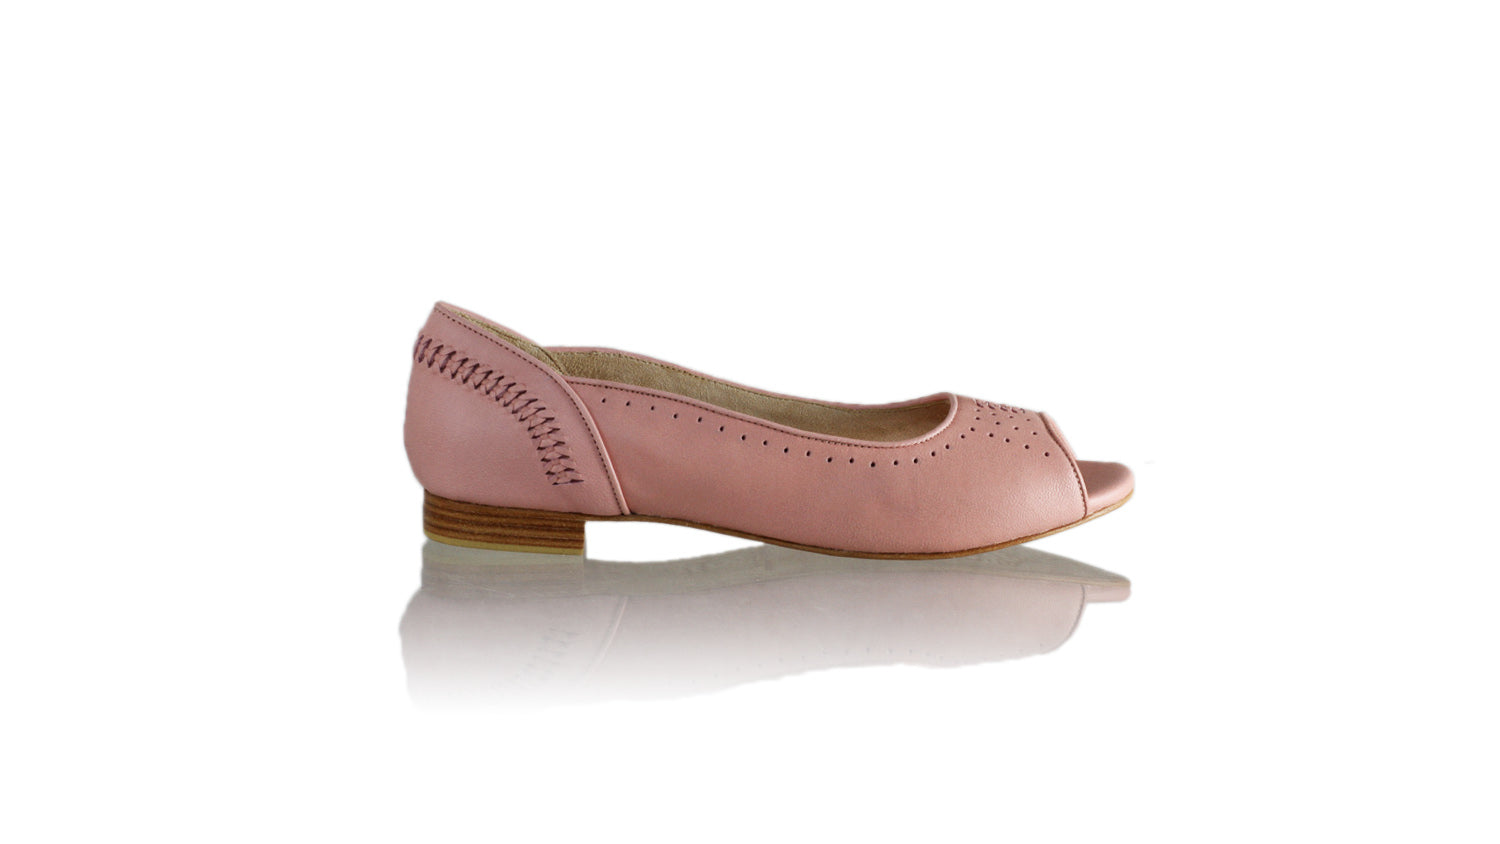 Leather-shoes-Donna Peeptoe 20mm Ballet - All Soft Pink-flats ballet-NILUH DJELANTIK-NILUH DJELANTIK